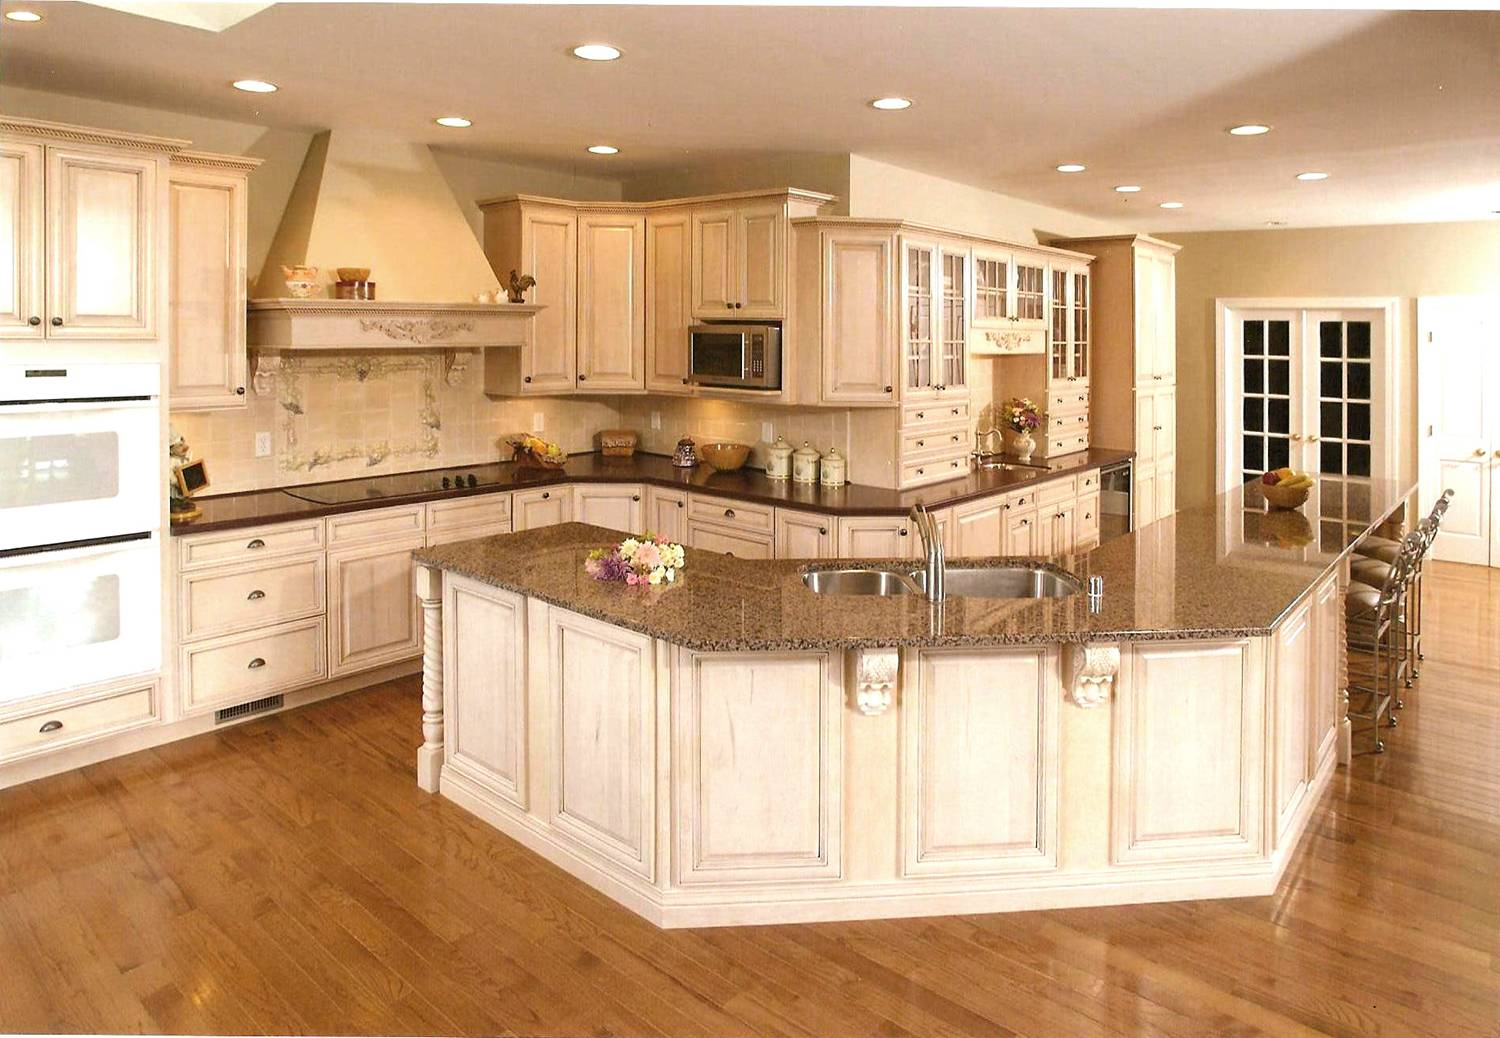 Kitchen Remodeling Updates And Additions Bel Air